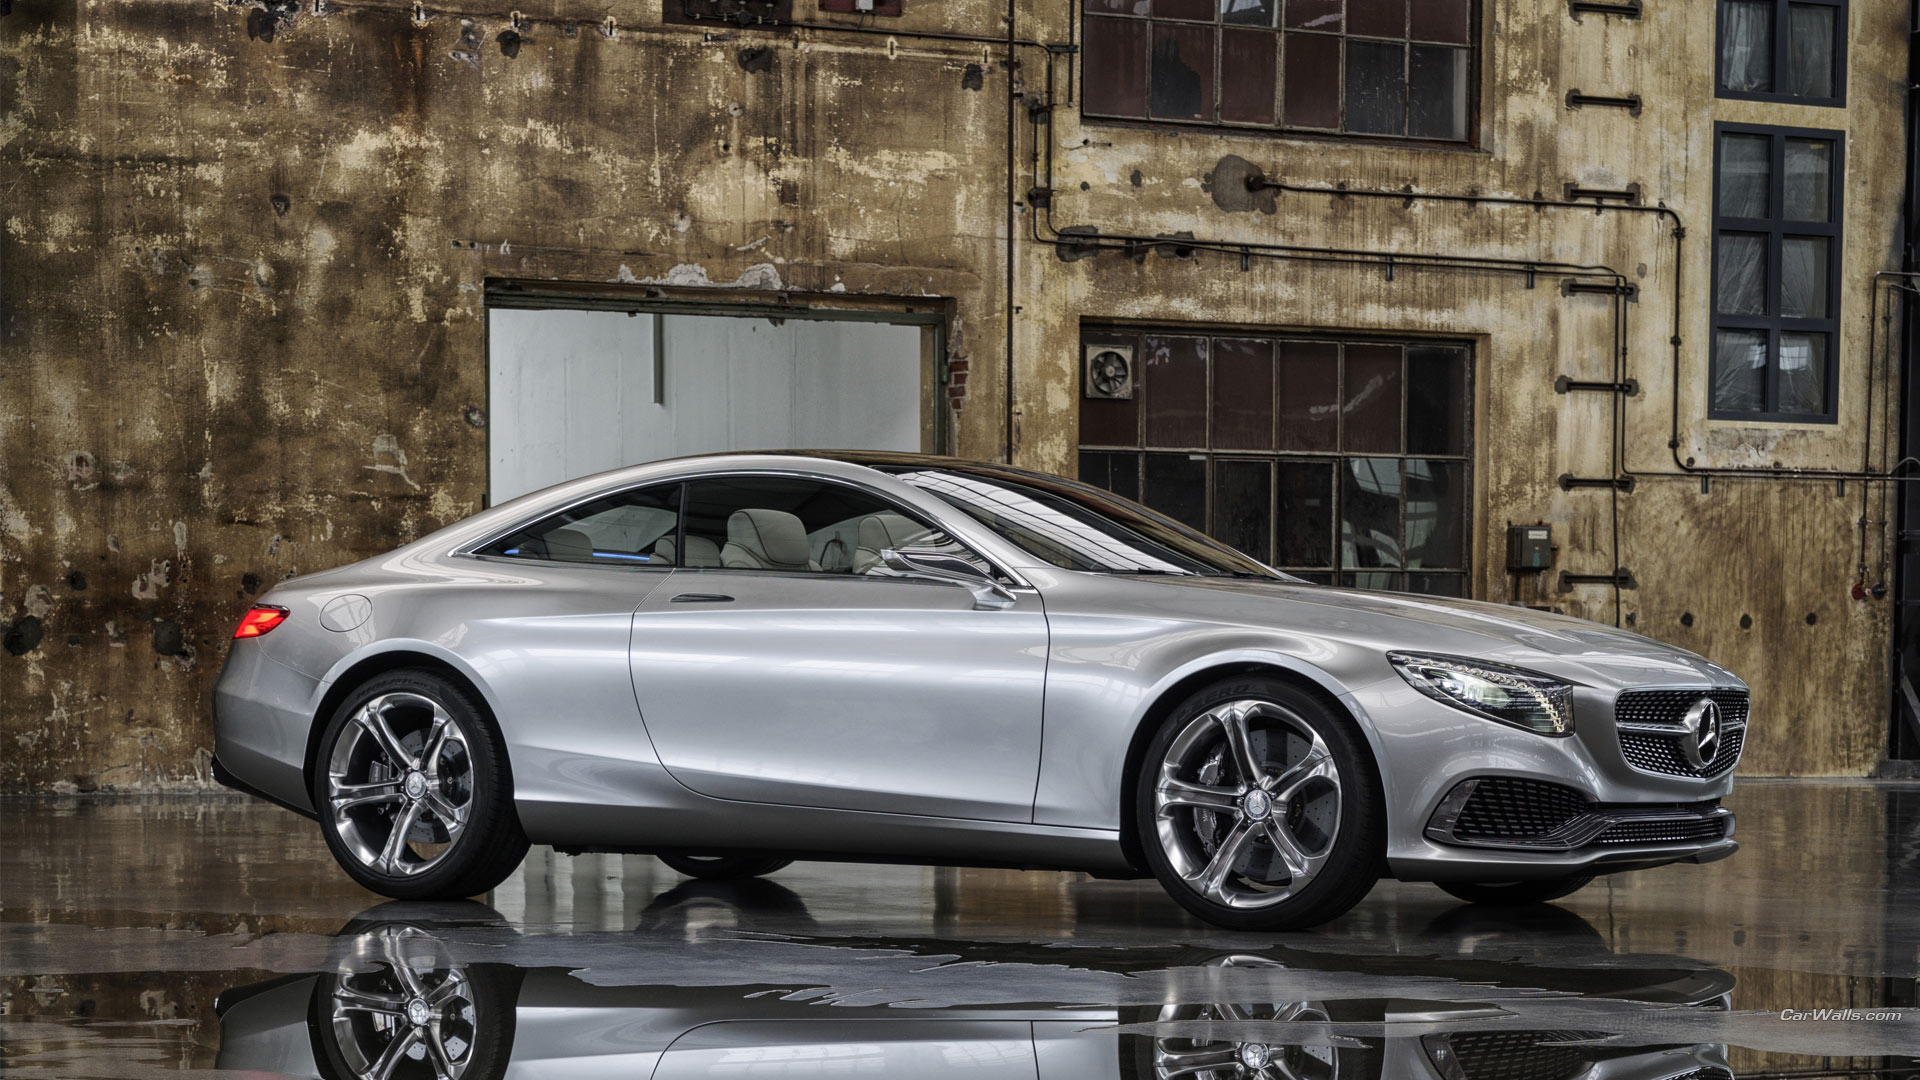 Mercedes Benz S Class Coupe Hd Wallpaper Background Image